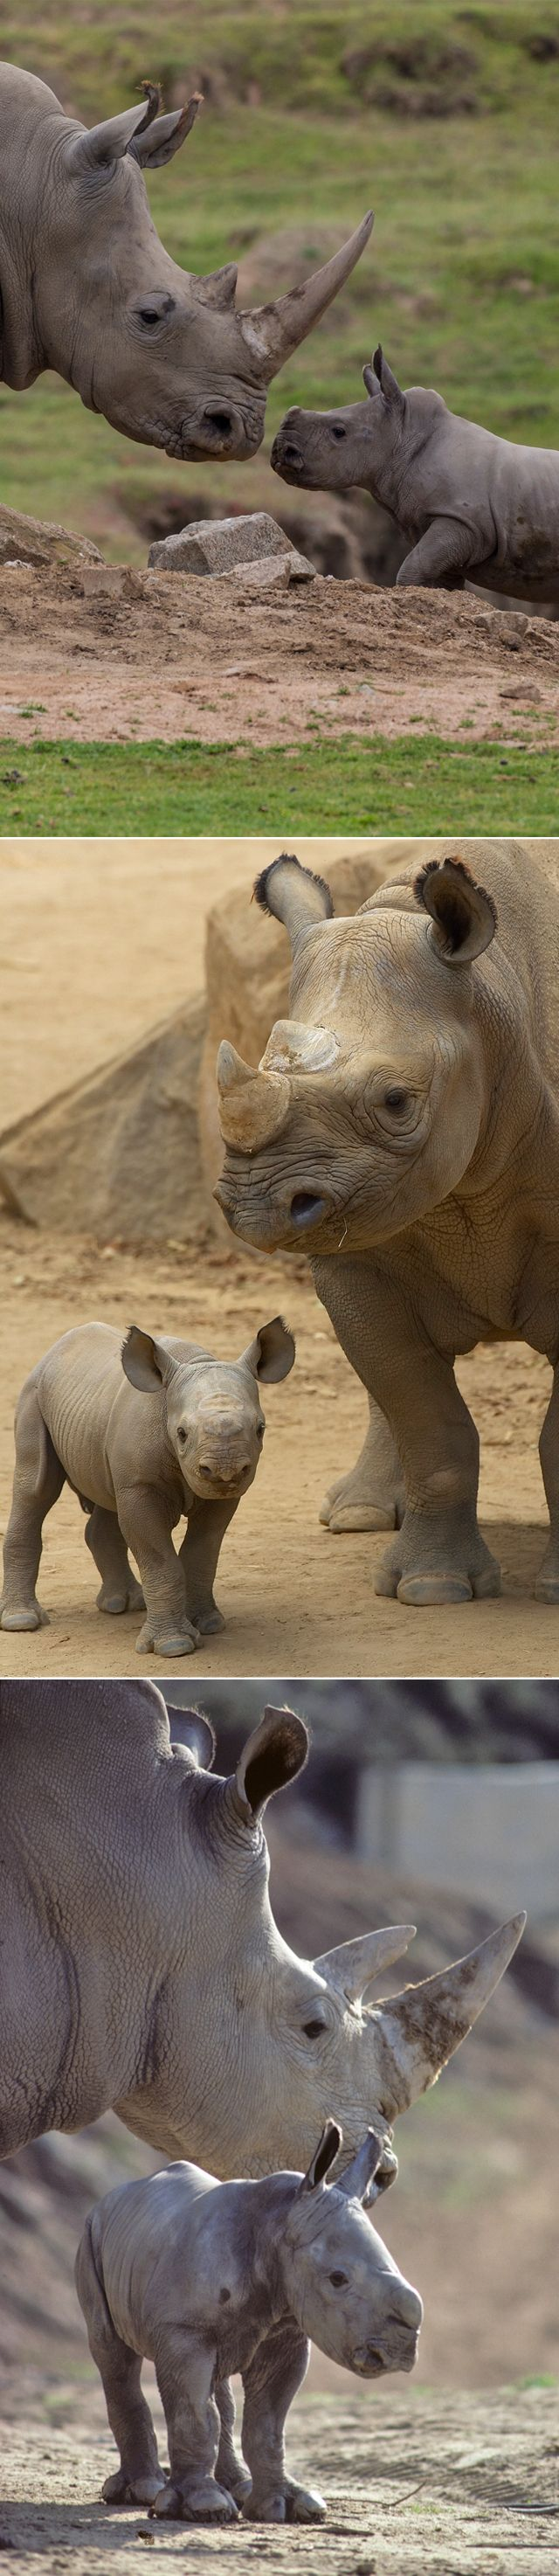 With 165 #rhinos born from 3 species, including 5 generations of black rhinos & 7 generations of greater one-horned rhinos, our breeding program for these ancient ambassadors is unparalleled. #WorldRhinoDay